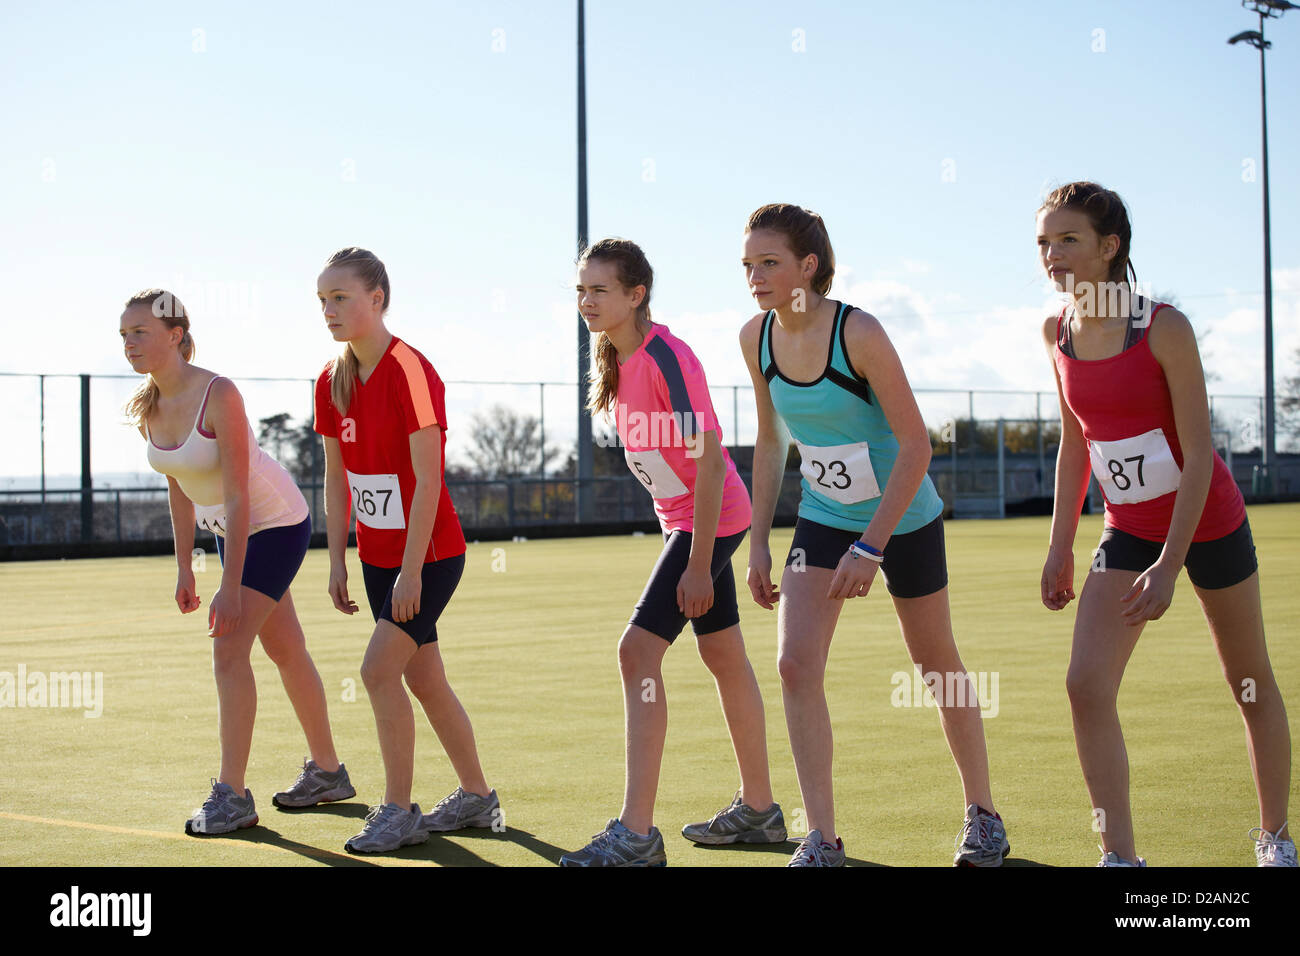 Runners lined up to race in field - Stock Image